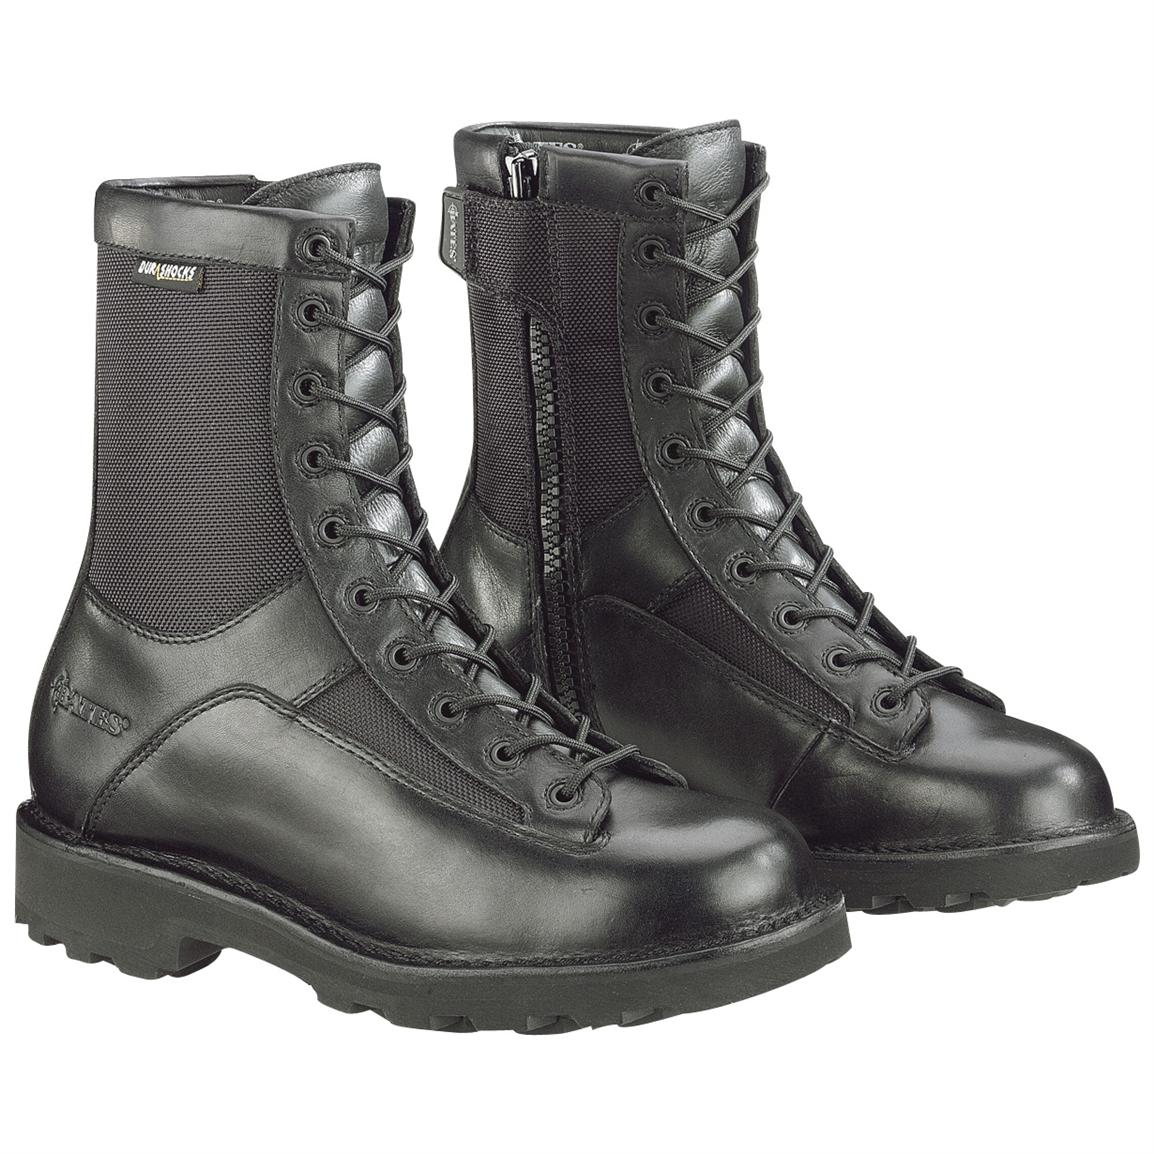 "Men's Bates 8"" DuraShocks Side-Zip Lace-To-Toe Combat Boots, Black"